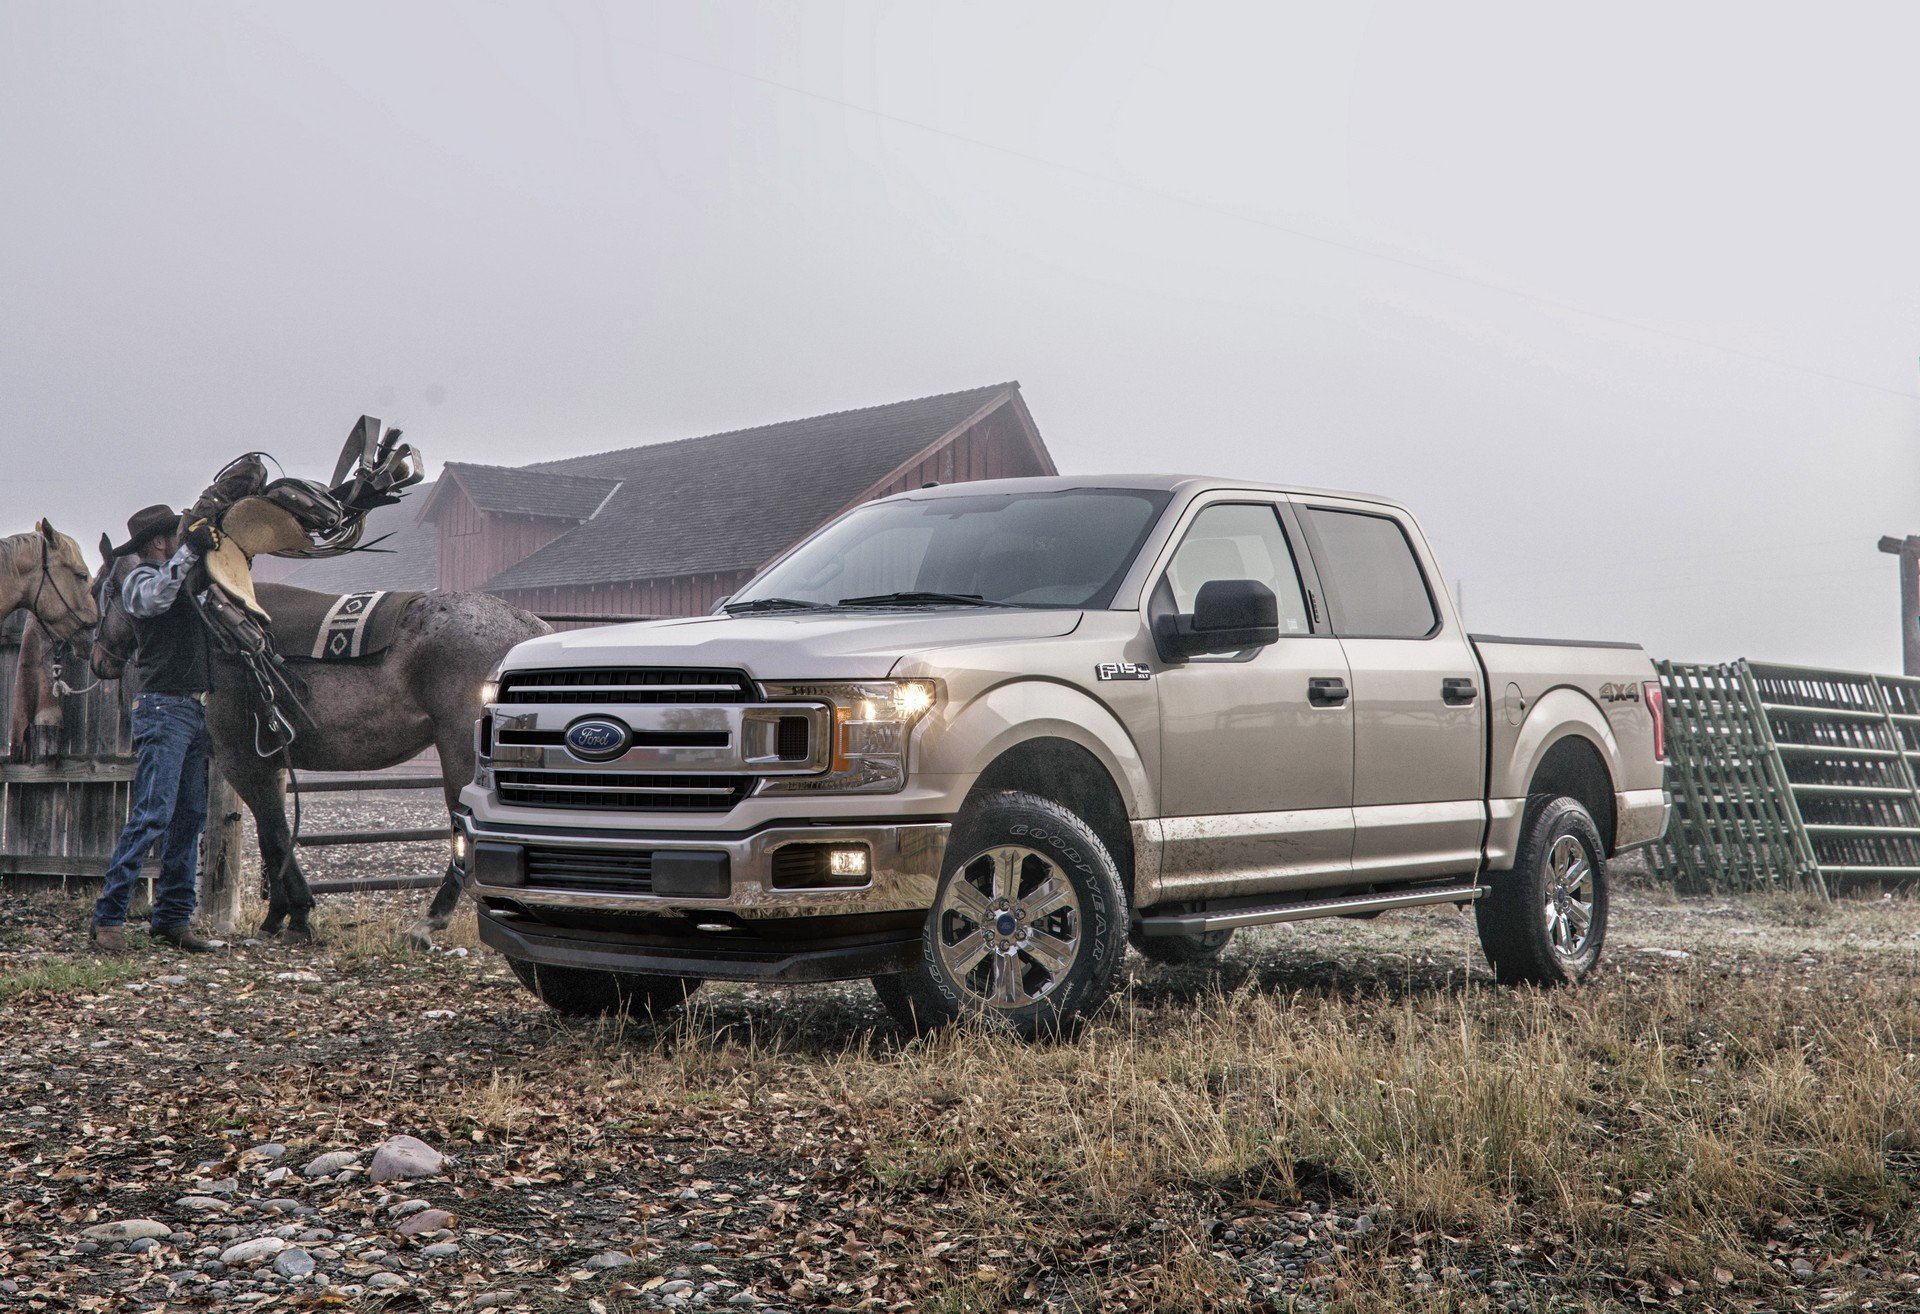 Seat belt fires spark recall of two million Ford F-150 trucks